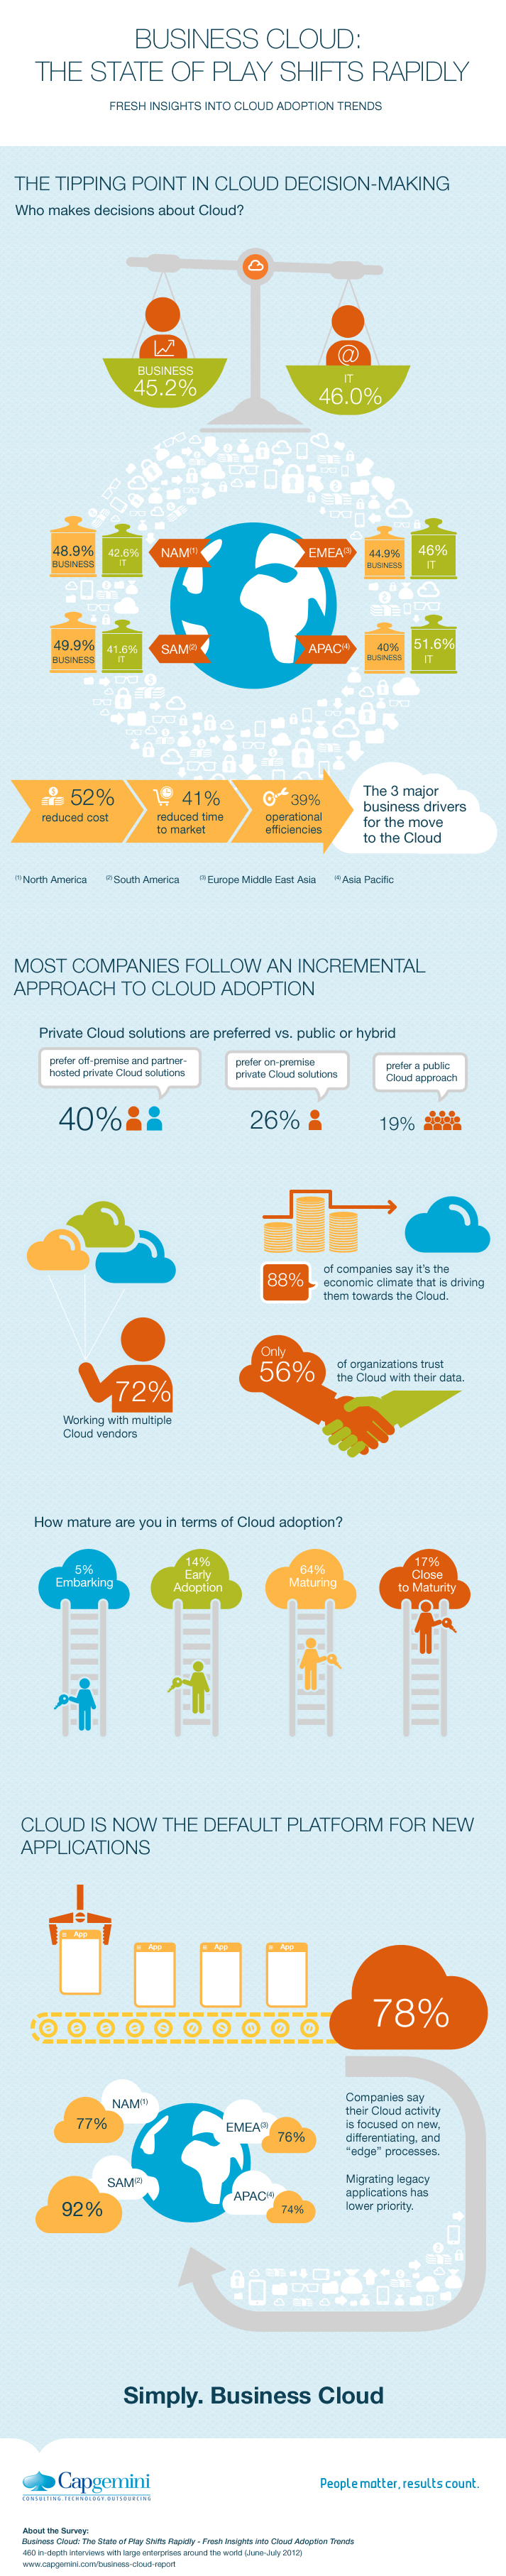 cloud-infographic-fresh-insights-into-cloud-adoption-trends